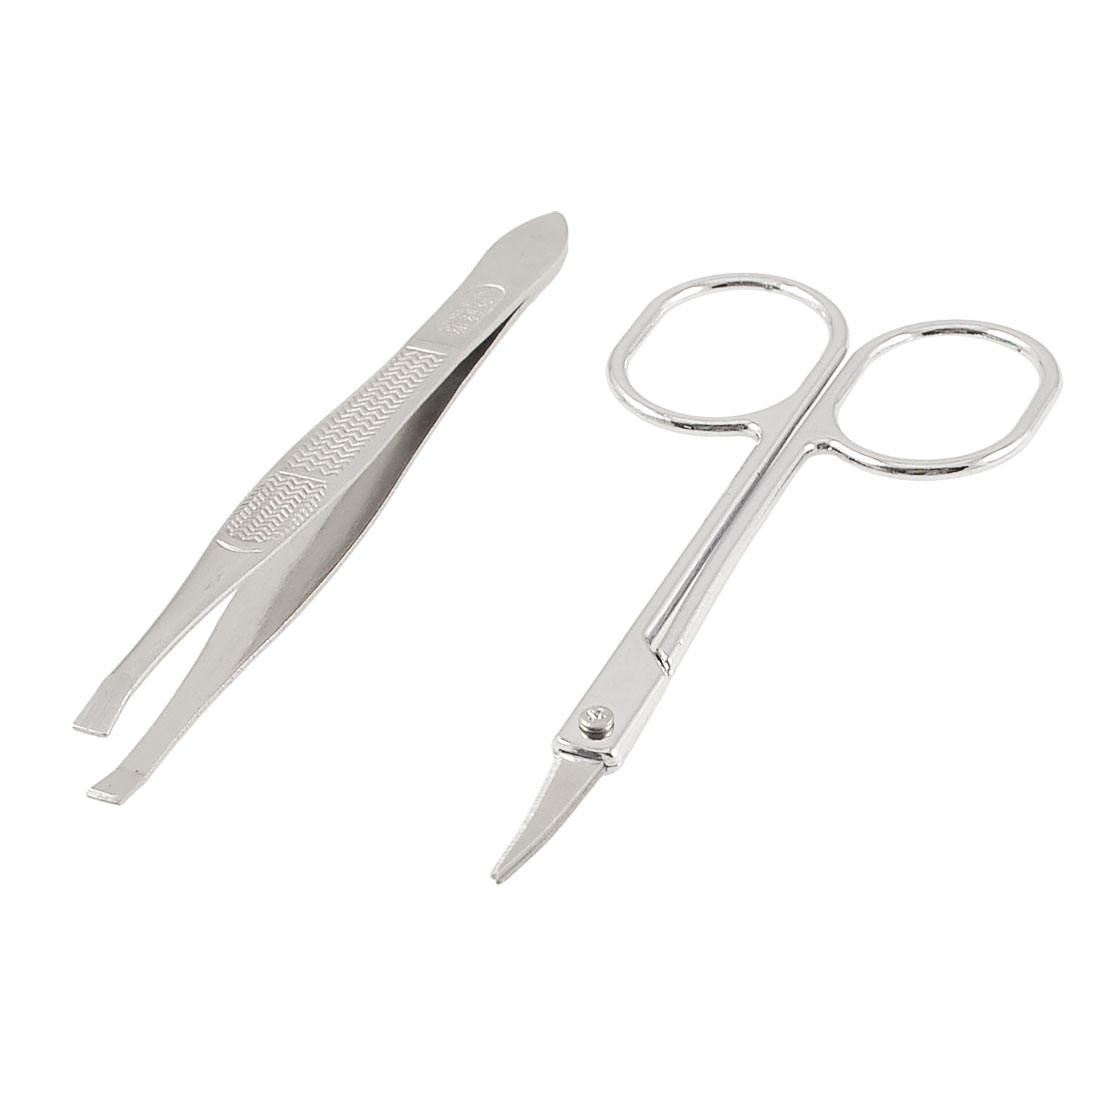 2 in 1 Metal Eyebrow Clips Scissors Cosmetic Tool Set for Lady